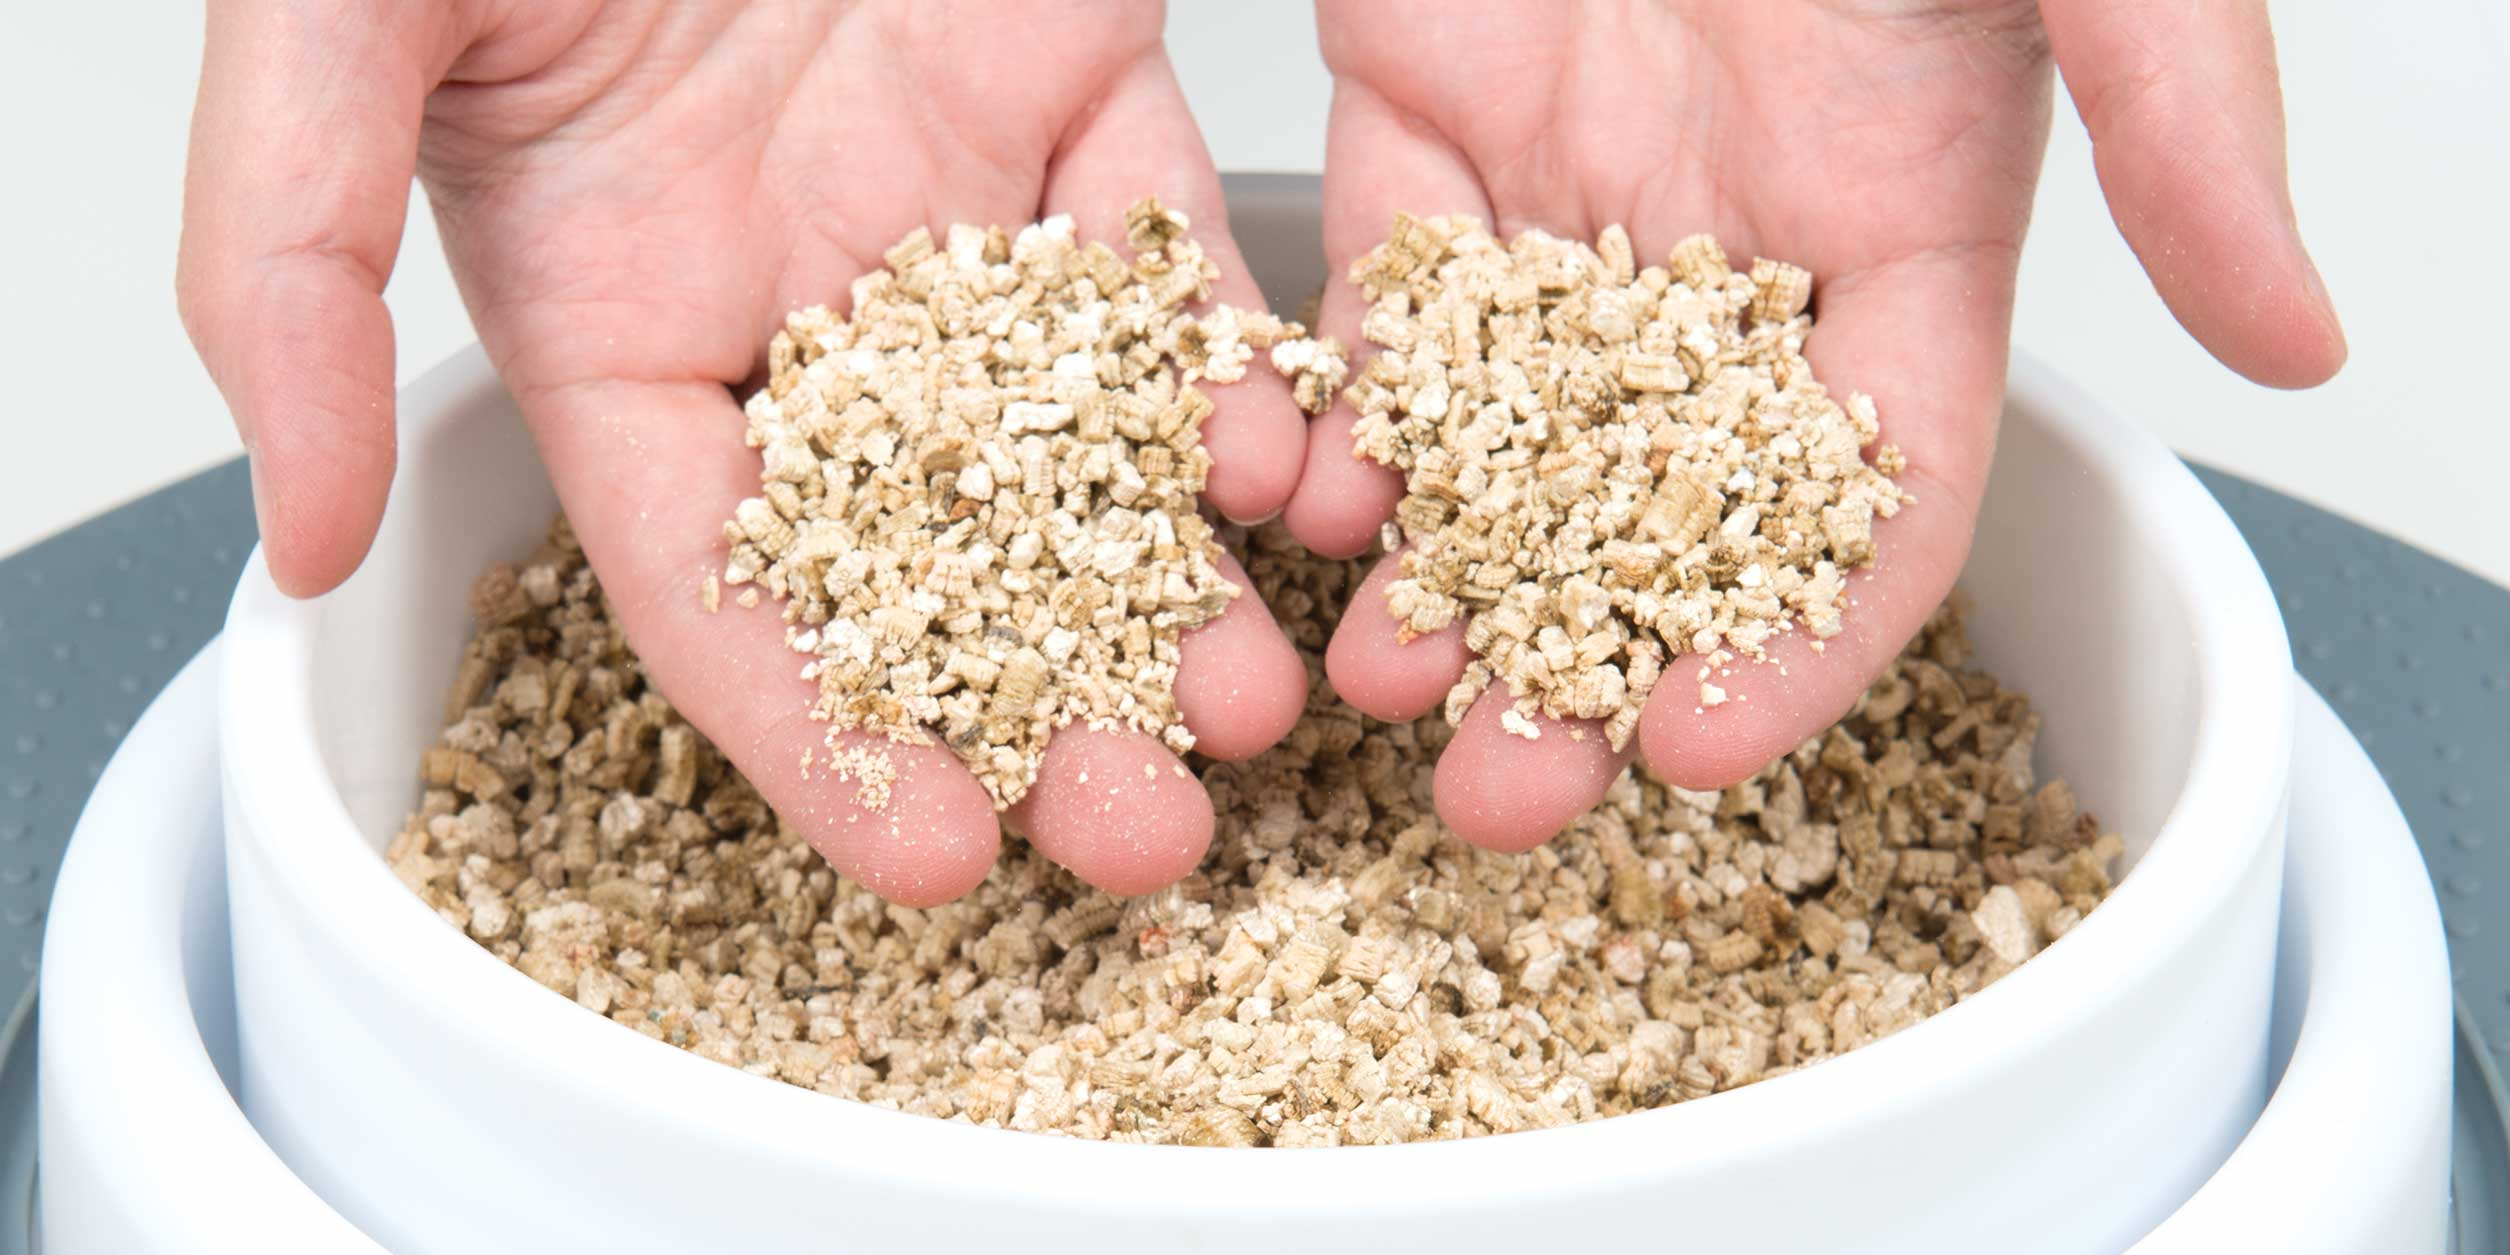 Clean hands holding the vermiculite in the Senses 2.0 Grass Planter